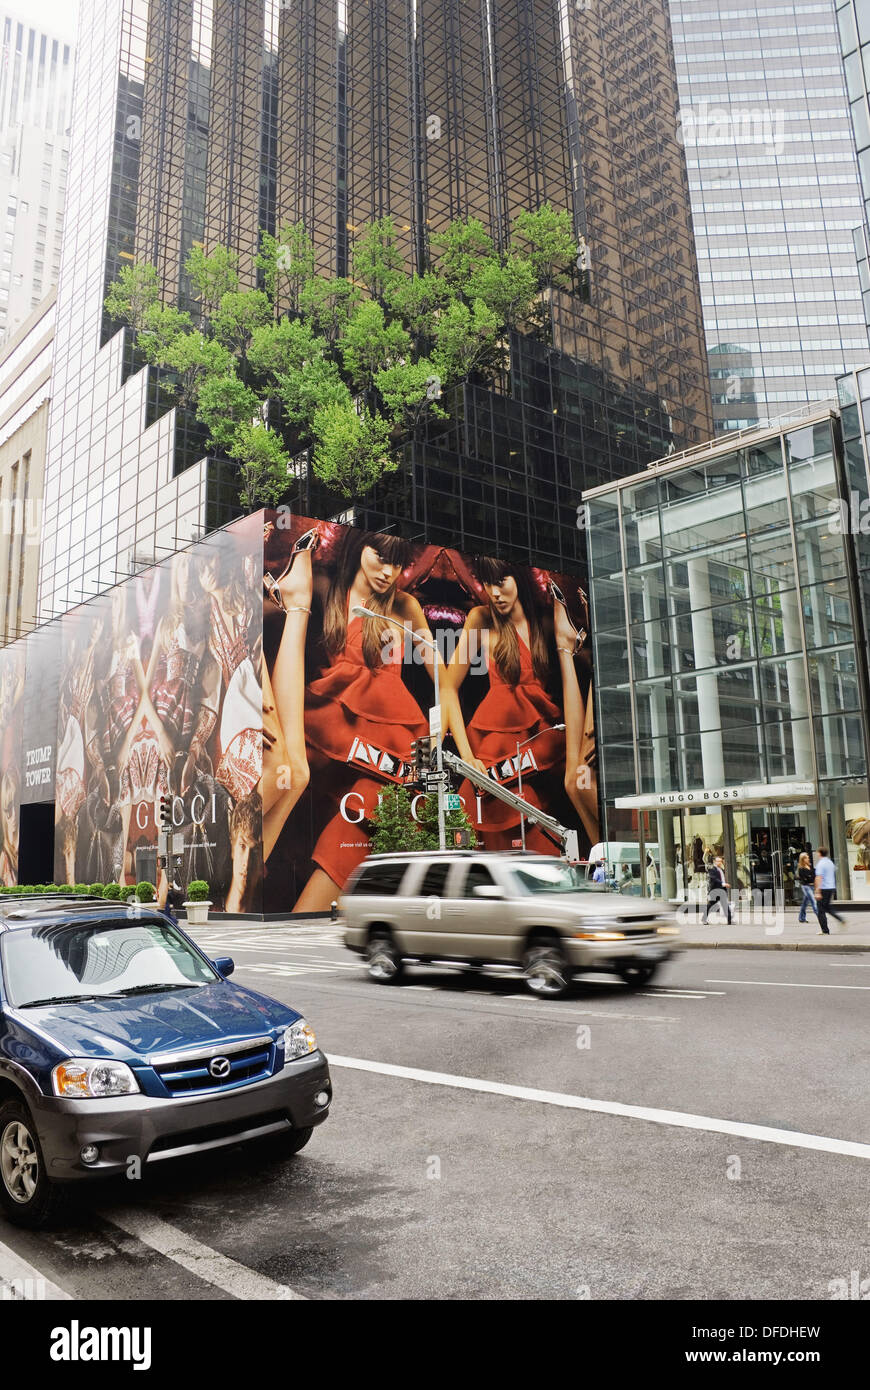 5th Avenue, Trump Tower with Gucci Advertising and Hugo Boss Store Front, Manhattan, New York City, New York, USA Stock Photo